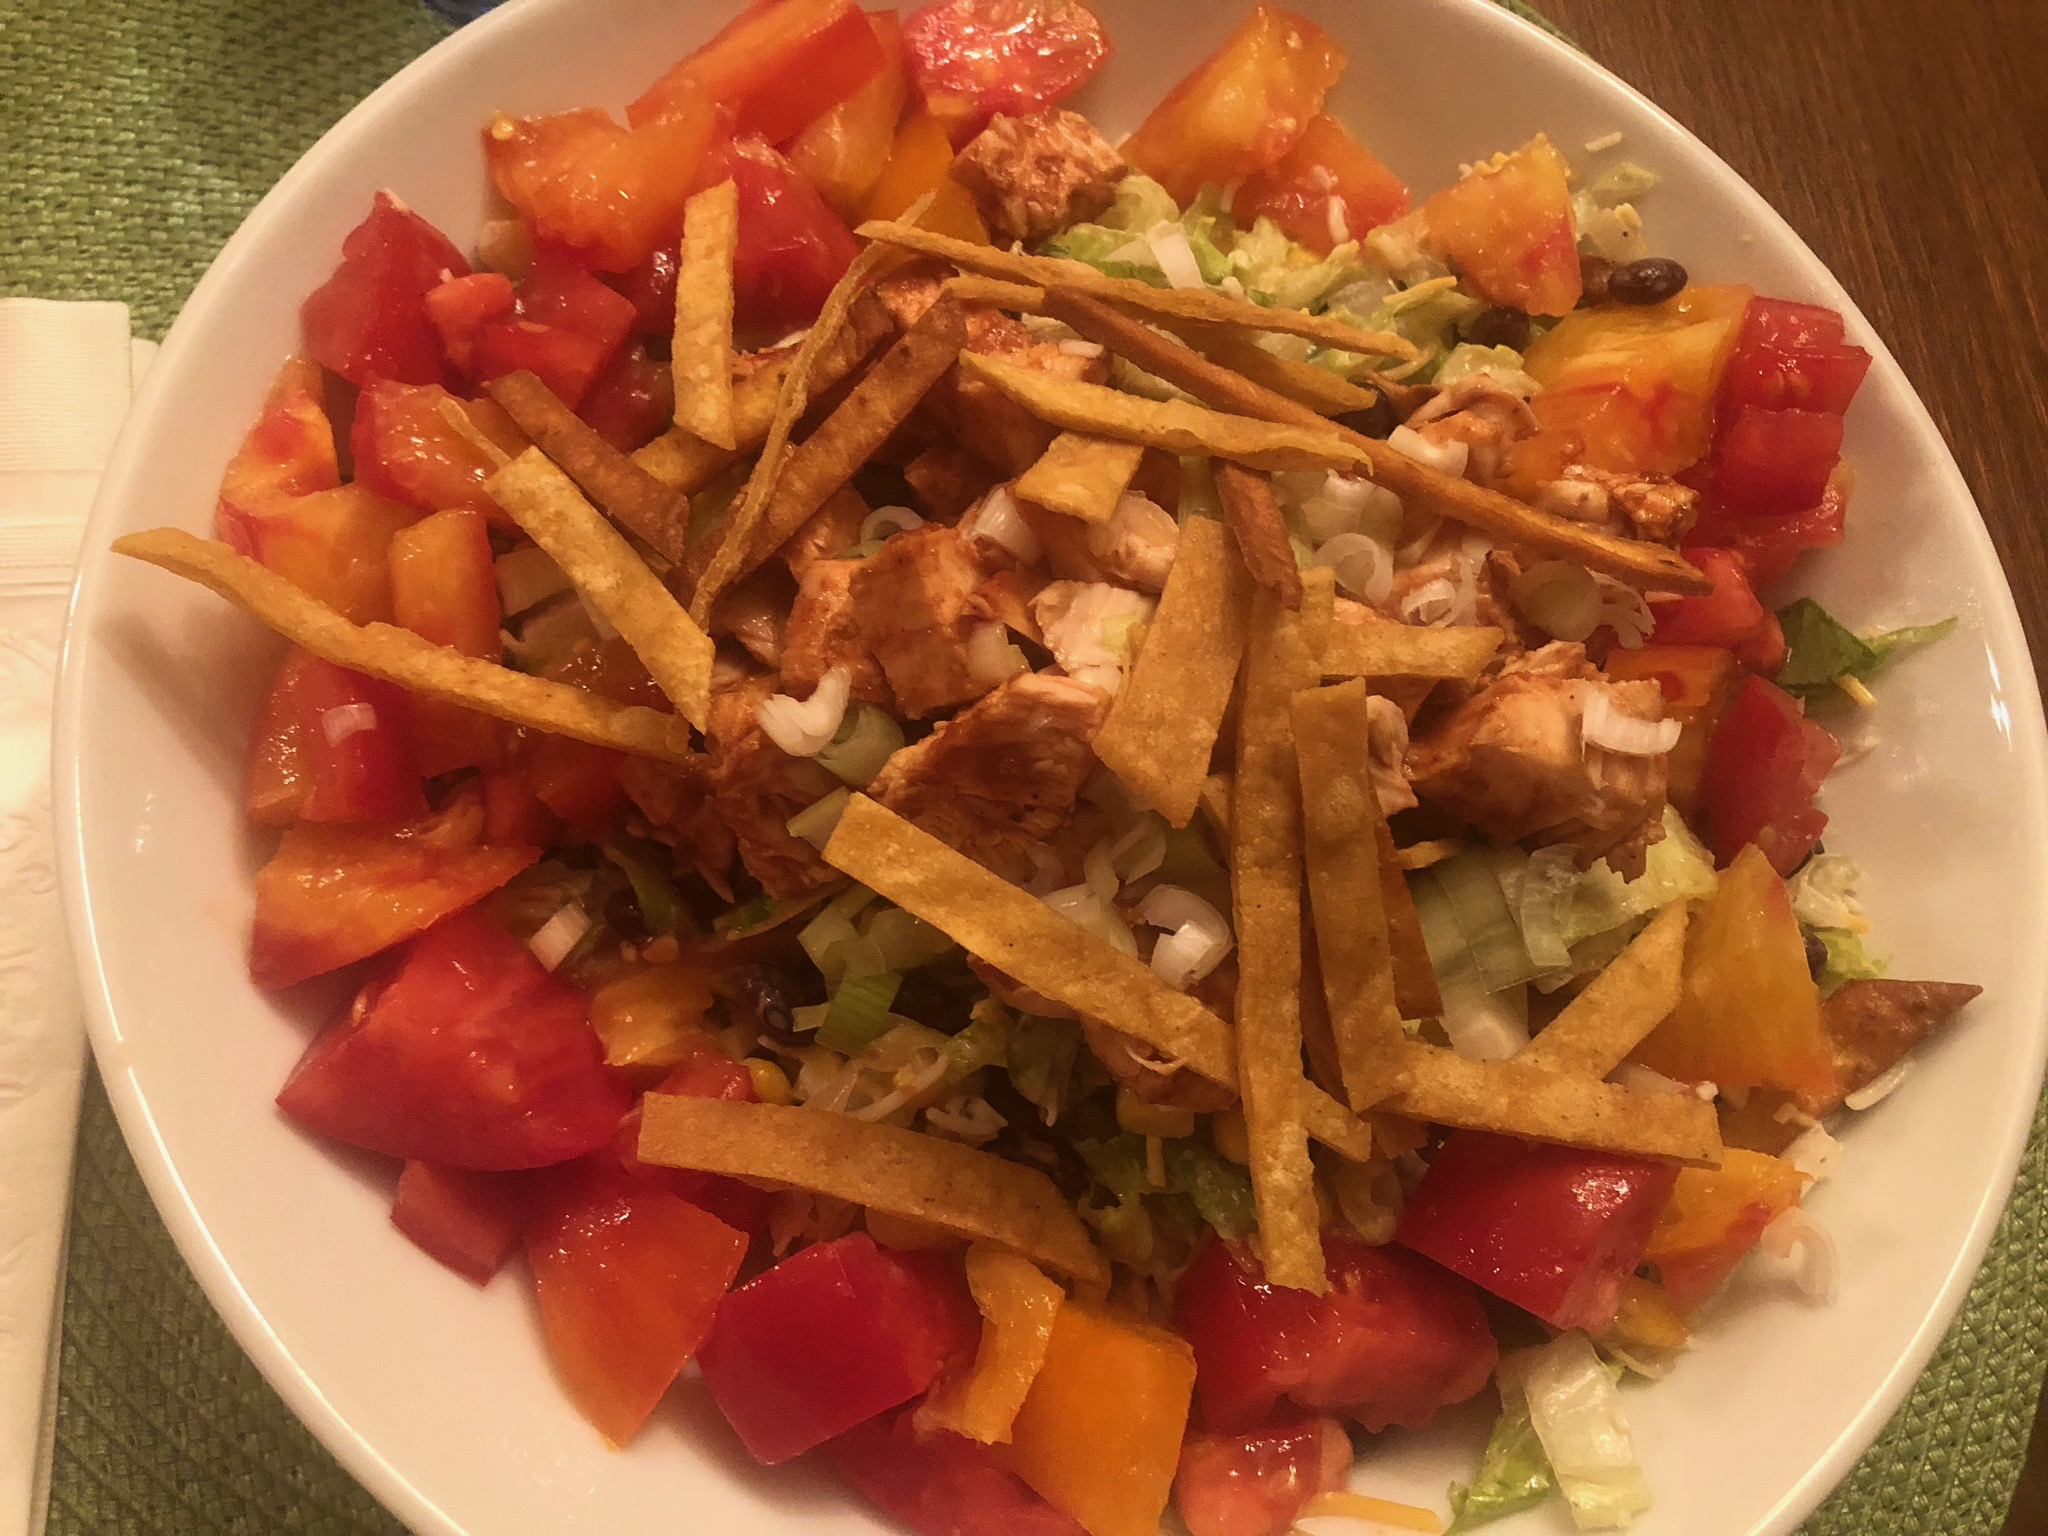 Smoked Chicken Salad with Heirloom Tomatoes